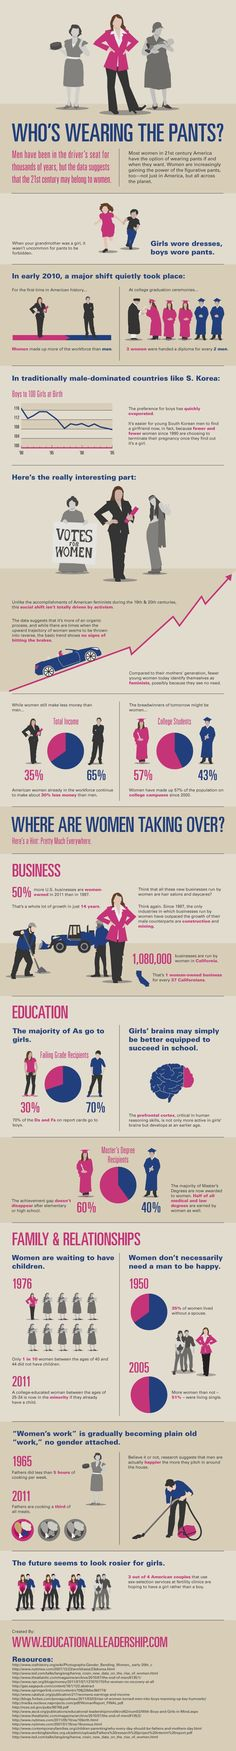 #Equality in leadership #infographic #woman